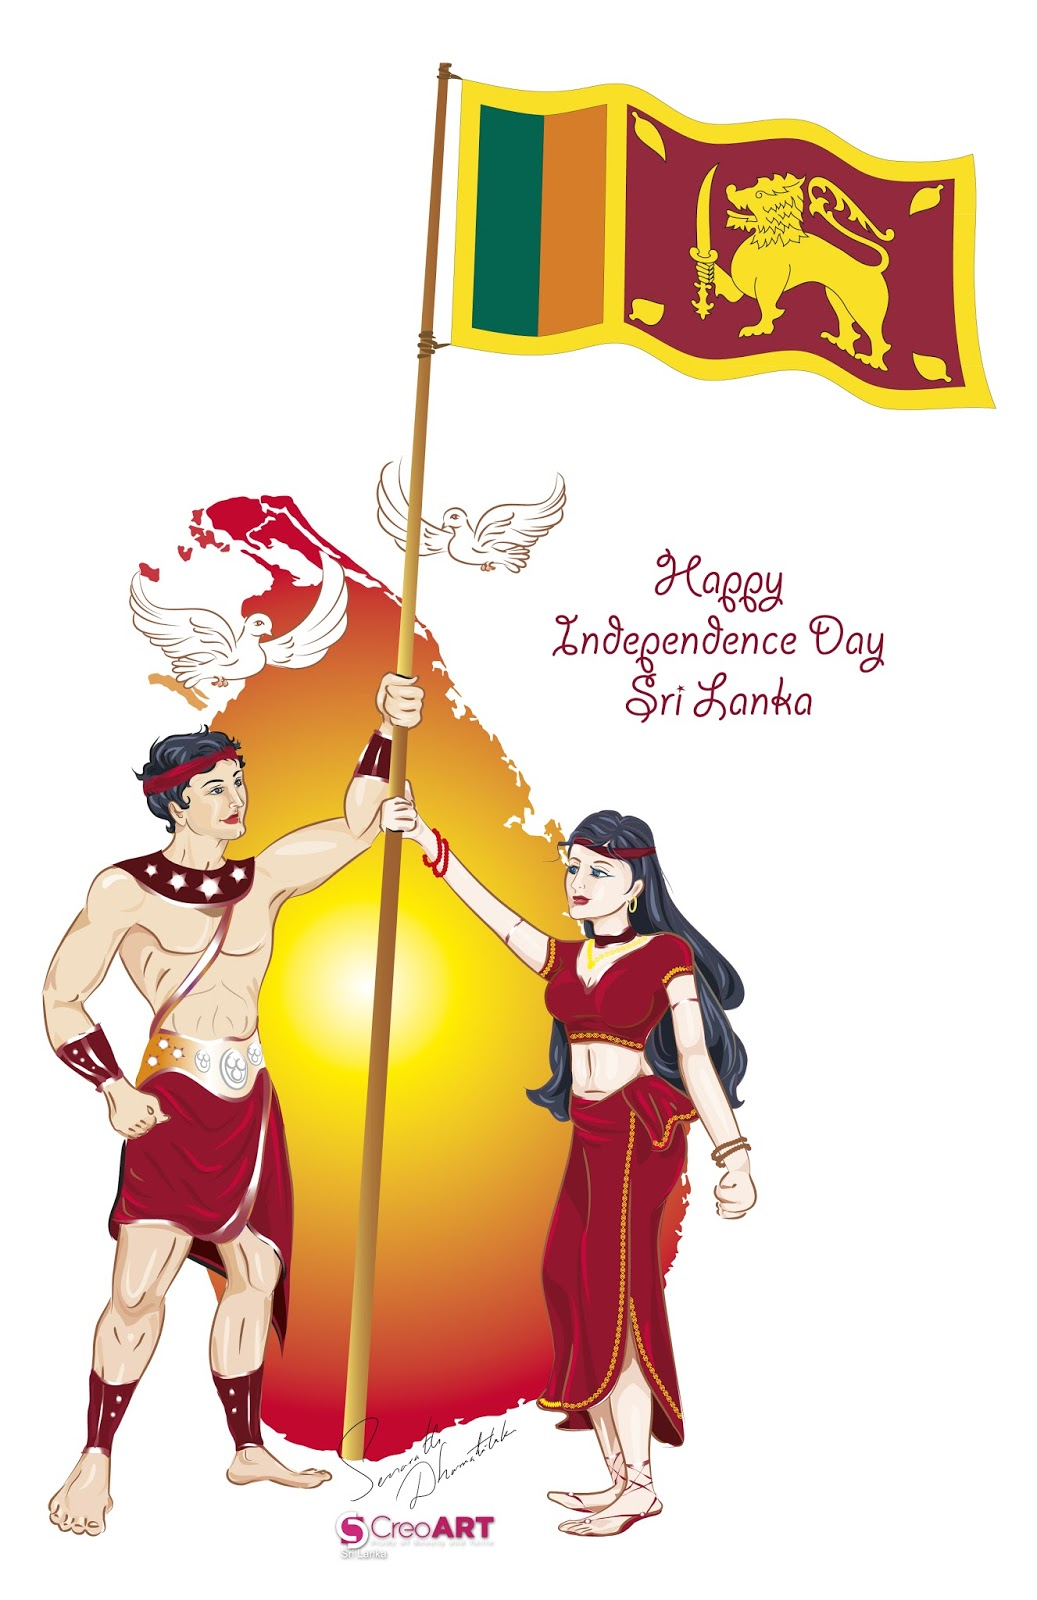 sri lanka s independence day The earl of wessex, prince edward and countess sophie rhys-jones arrived in sri lanka to participate in the 70th independence day celebrations to be held on sunday.